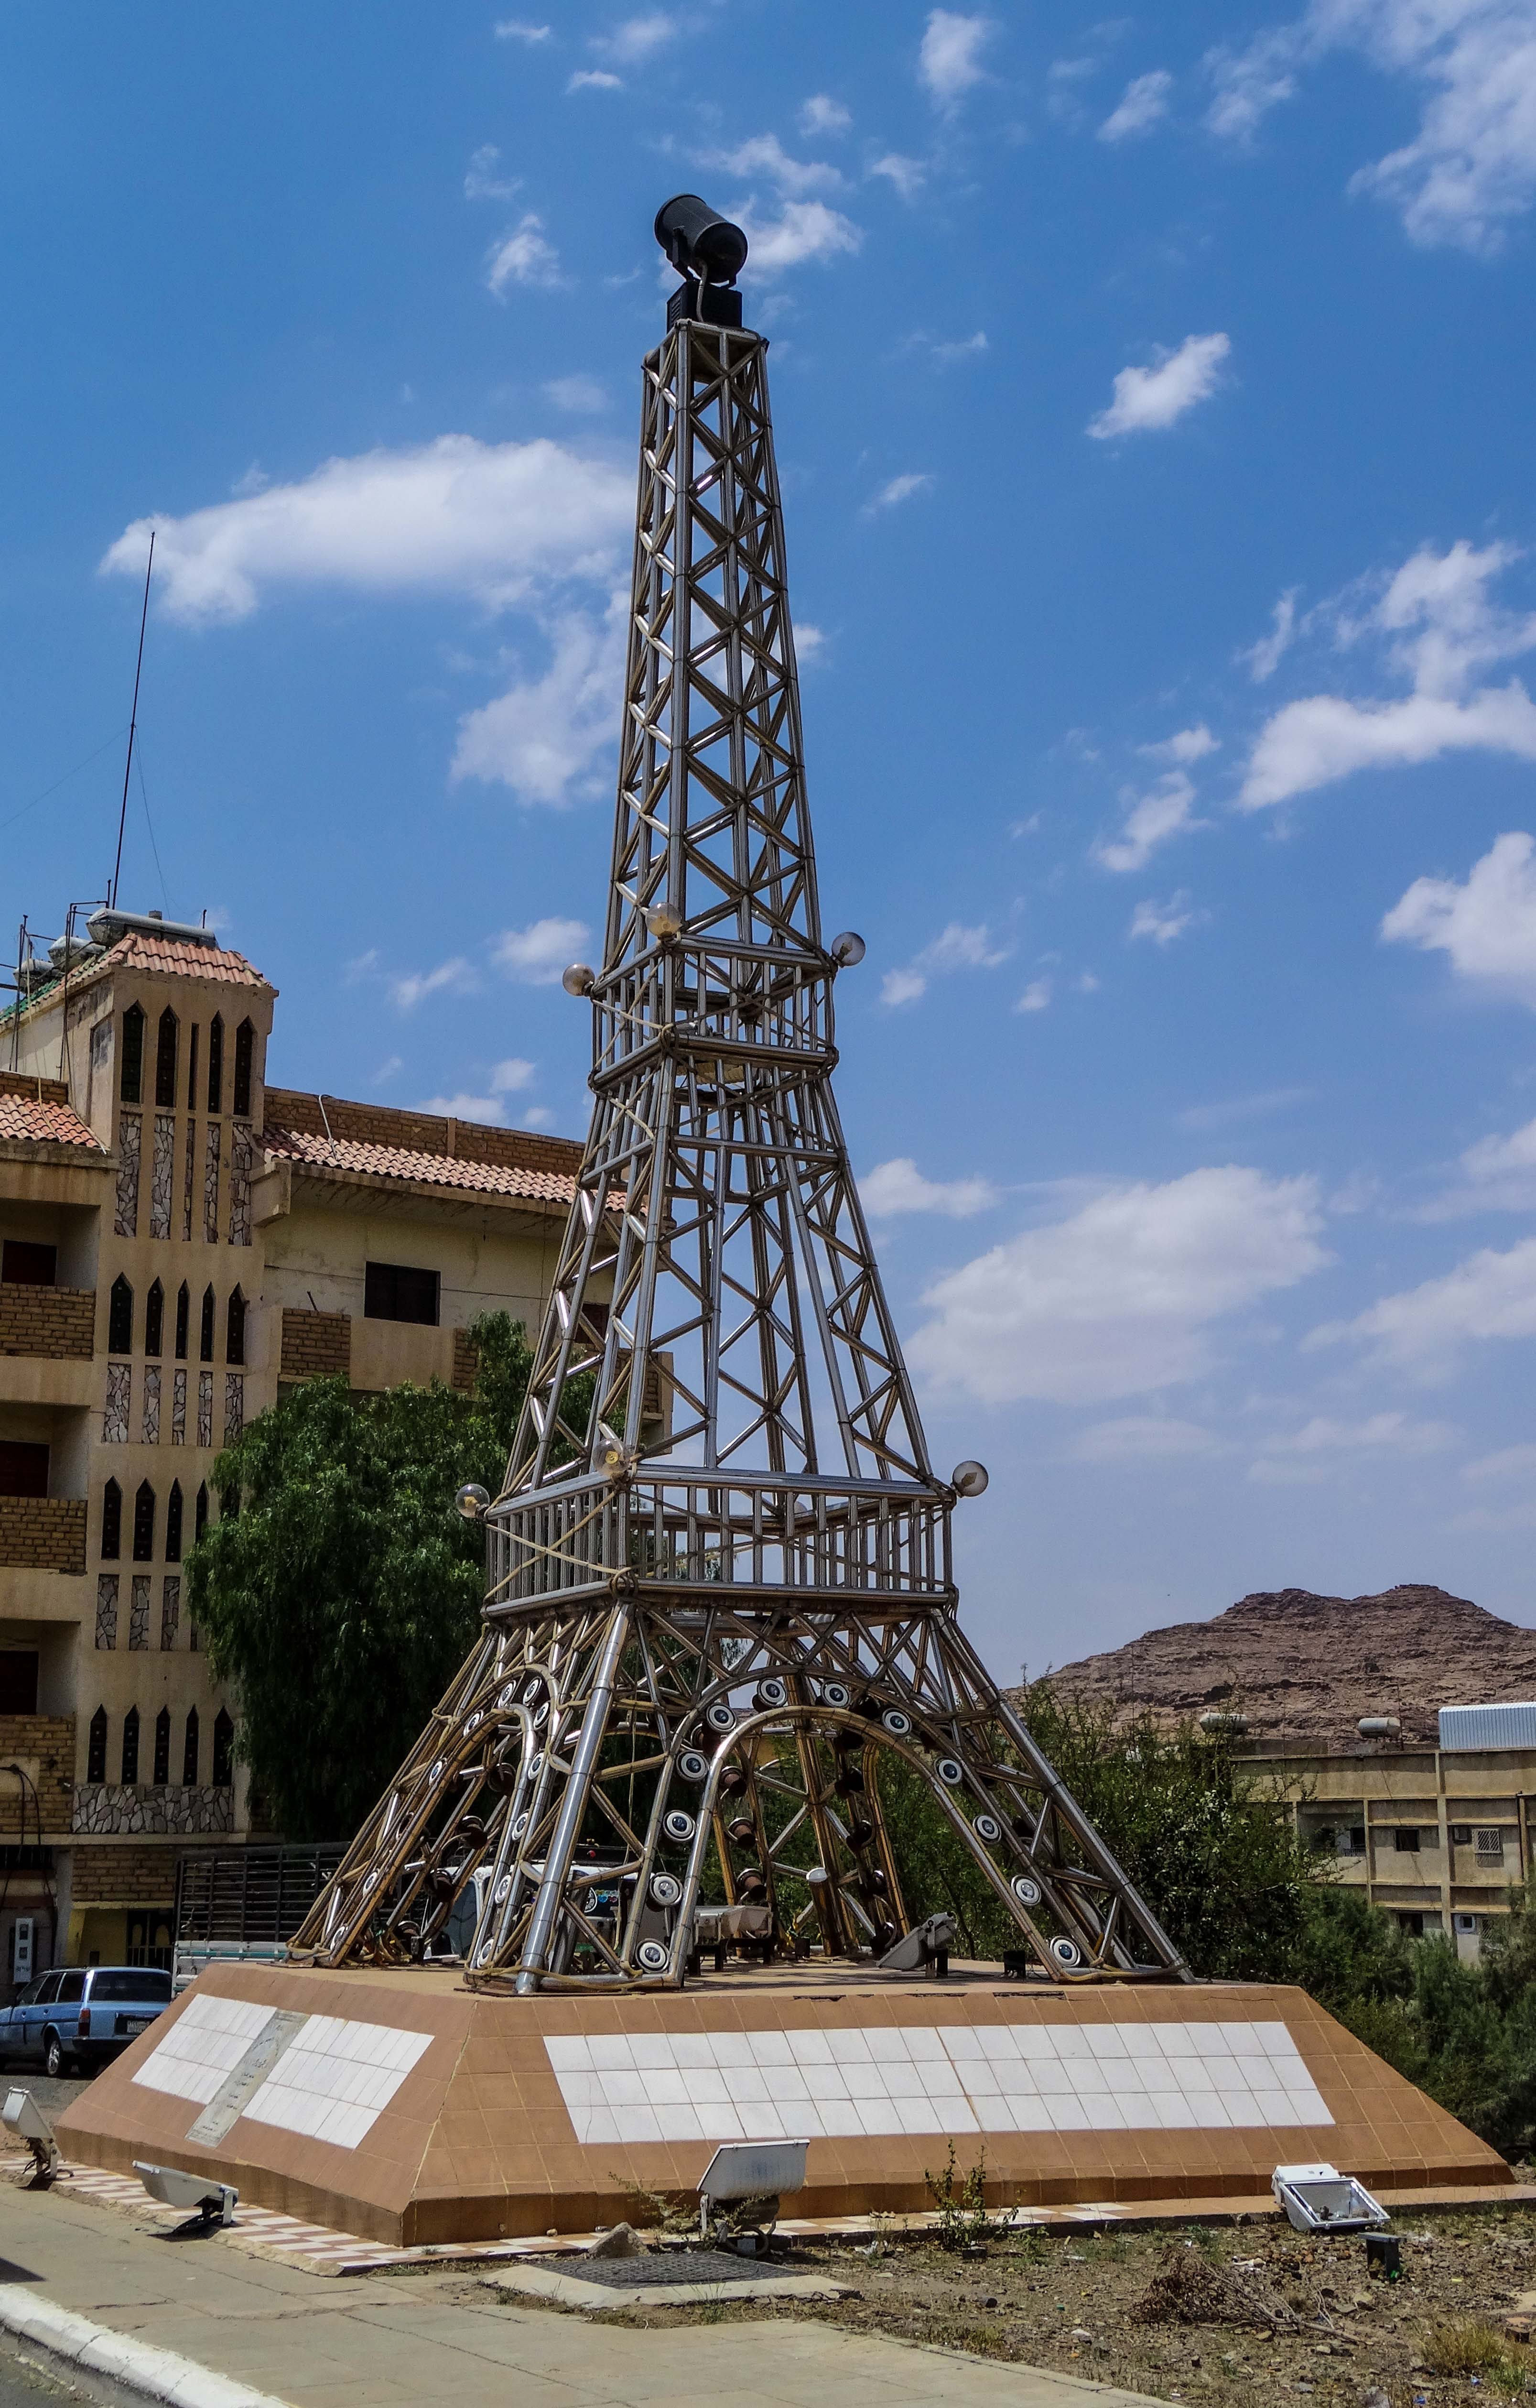 Replica of the Eiffel Tower (photo: Florent Egal)